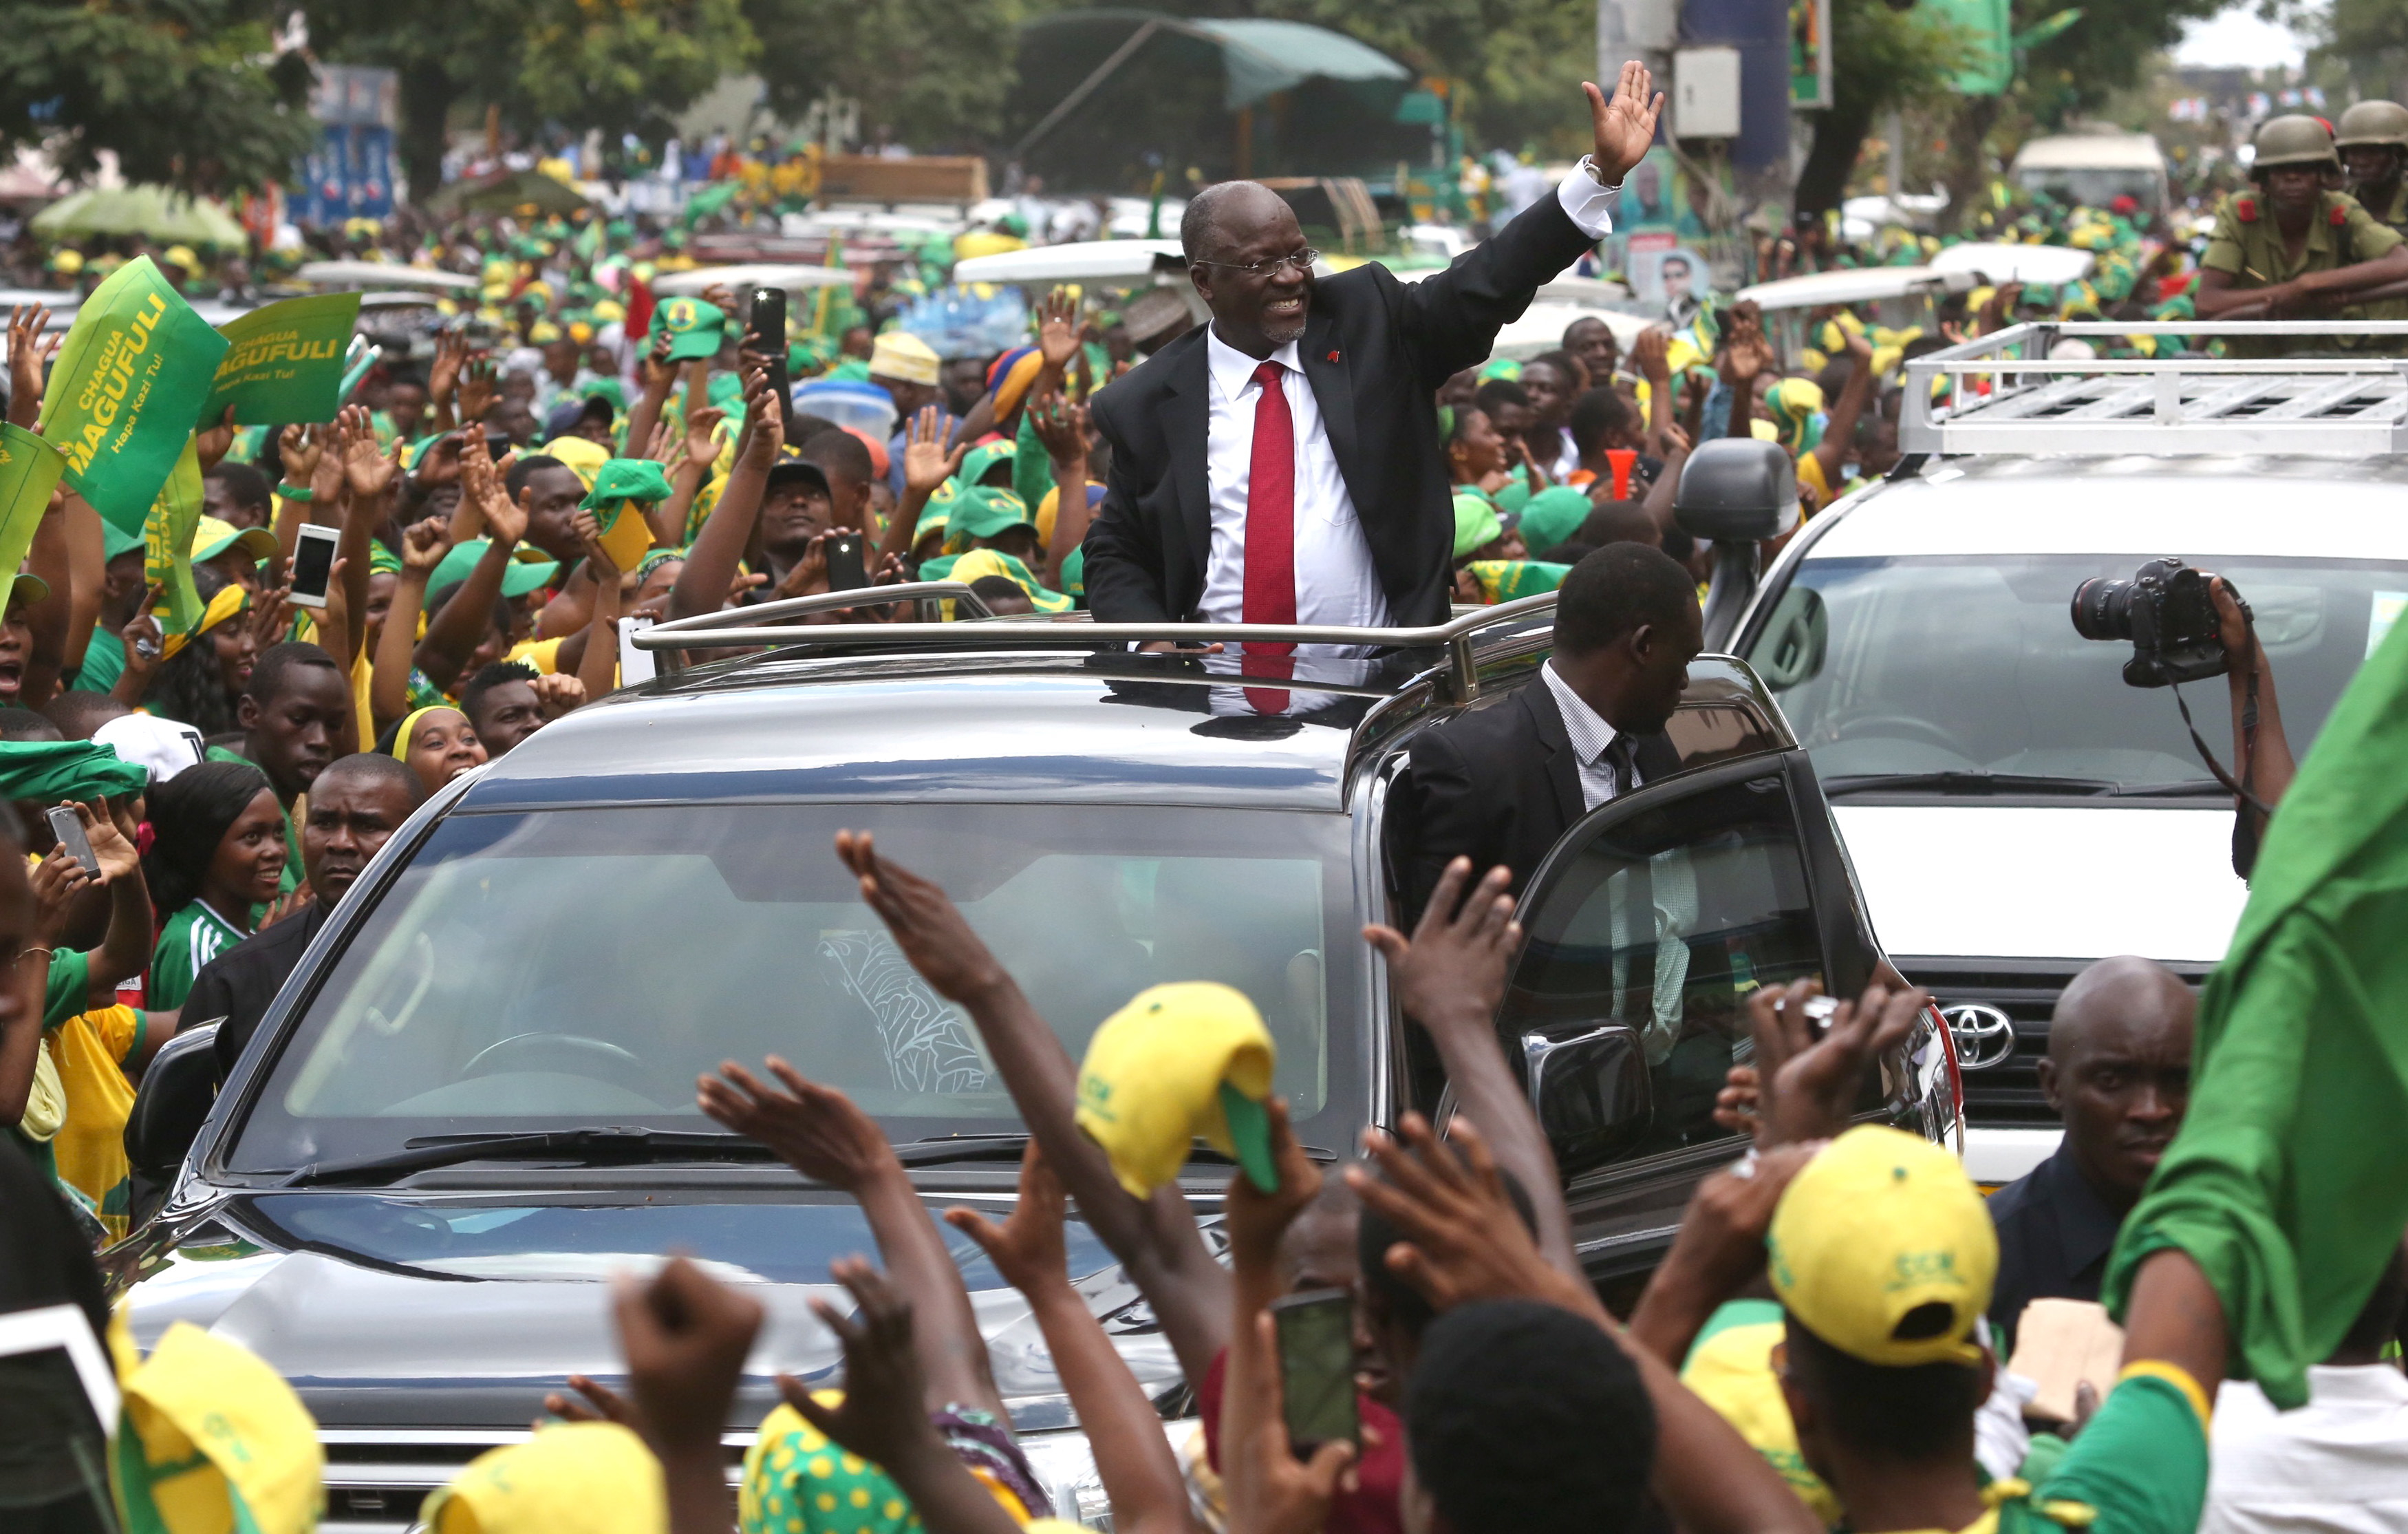 Tanzania's President elect John Pombe Magufuli (C) salutes members of the ruling Chama Cha Mapinduzi Party (CCM) as he arrives at the party's sub-head office on Lumumba road in Dar es Salaam, October 30, 2015. Tanzania's ruling party candidate, John Magufuli, was declared winner on Thursday of a presidential election, after the national electoral body dismissed opposition complaints about the process and a demand for a recount. The election has been the most hotly contested race in the more than half a century of rule by the Chama Cha Mapinduzi Party, which fielded Magufuli, 56, a minister for public works.